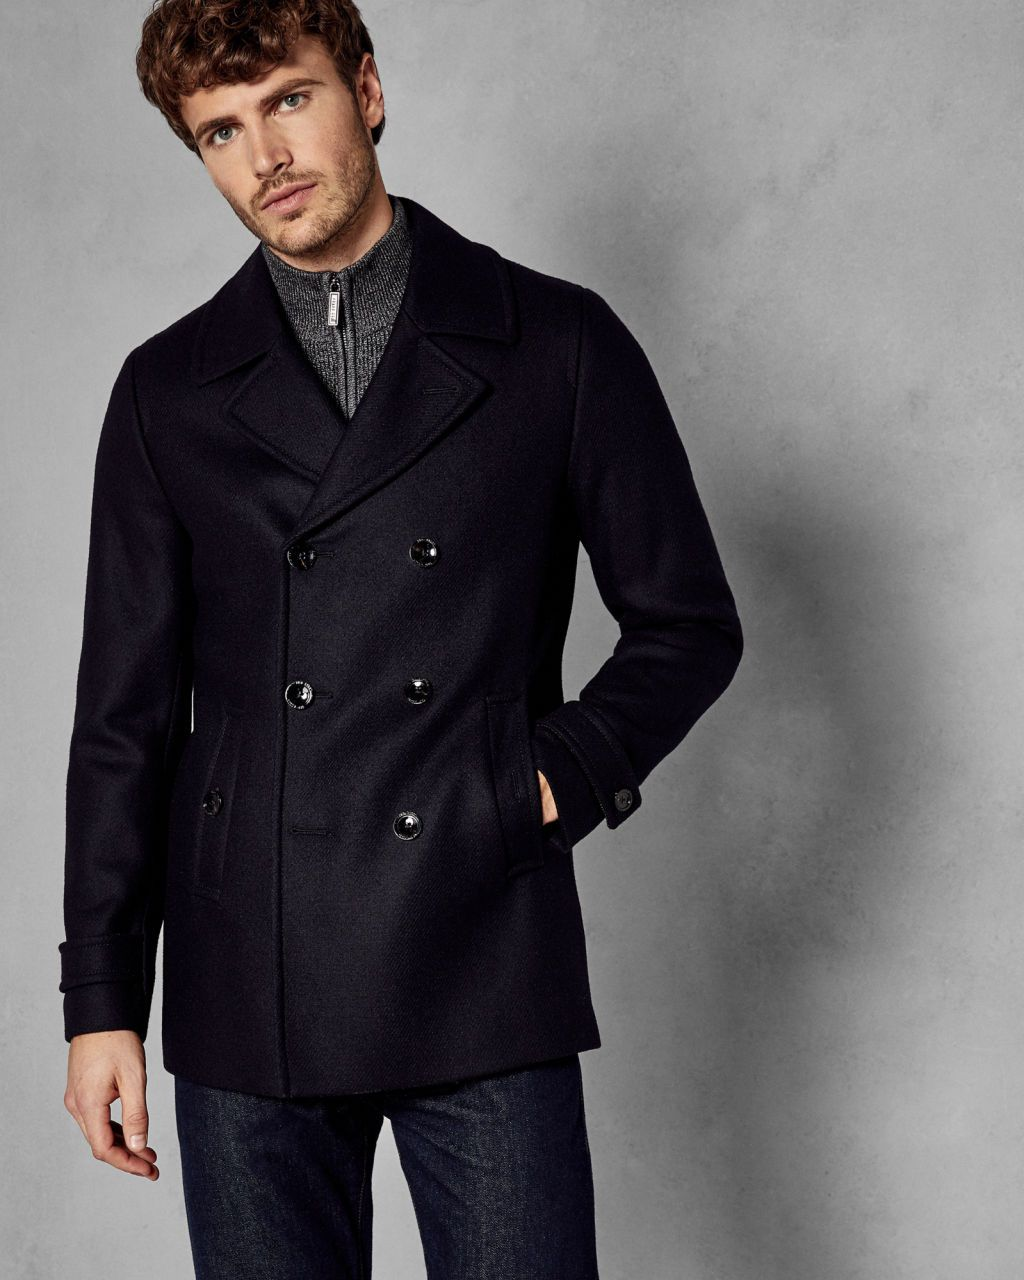 2906ee4de Ted baker navy peacoat for men. winter clothes. winter fashion and outfits.  winter layering for men. mens winter and fall fashion